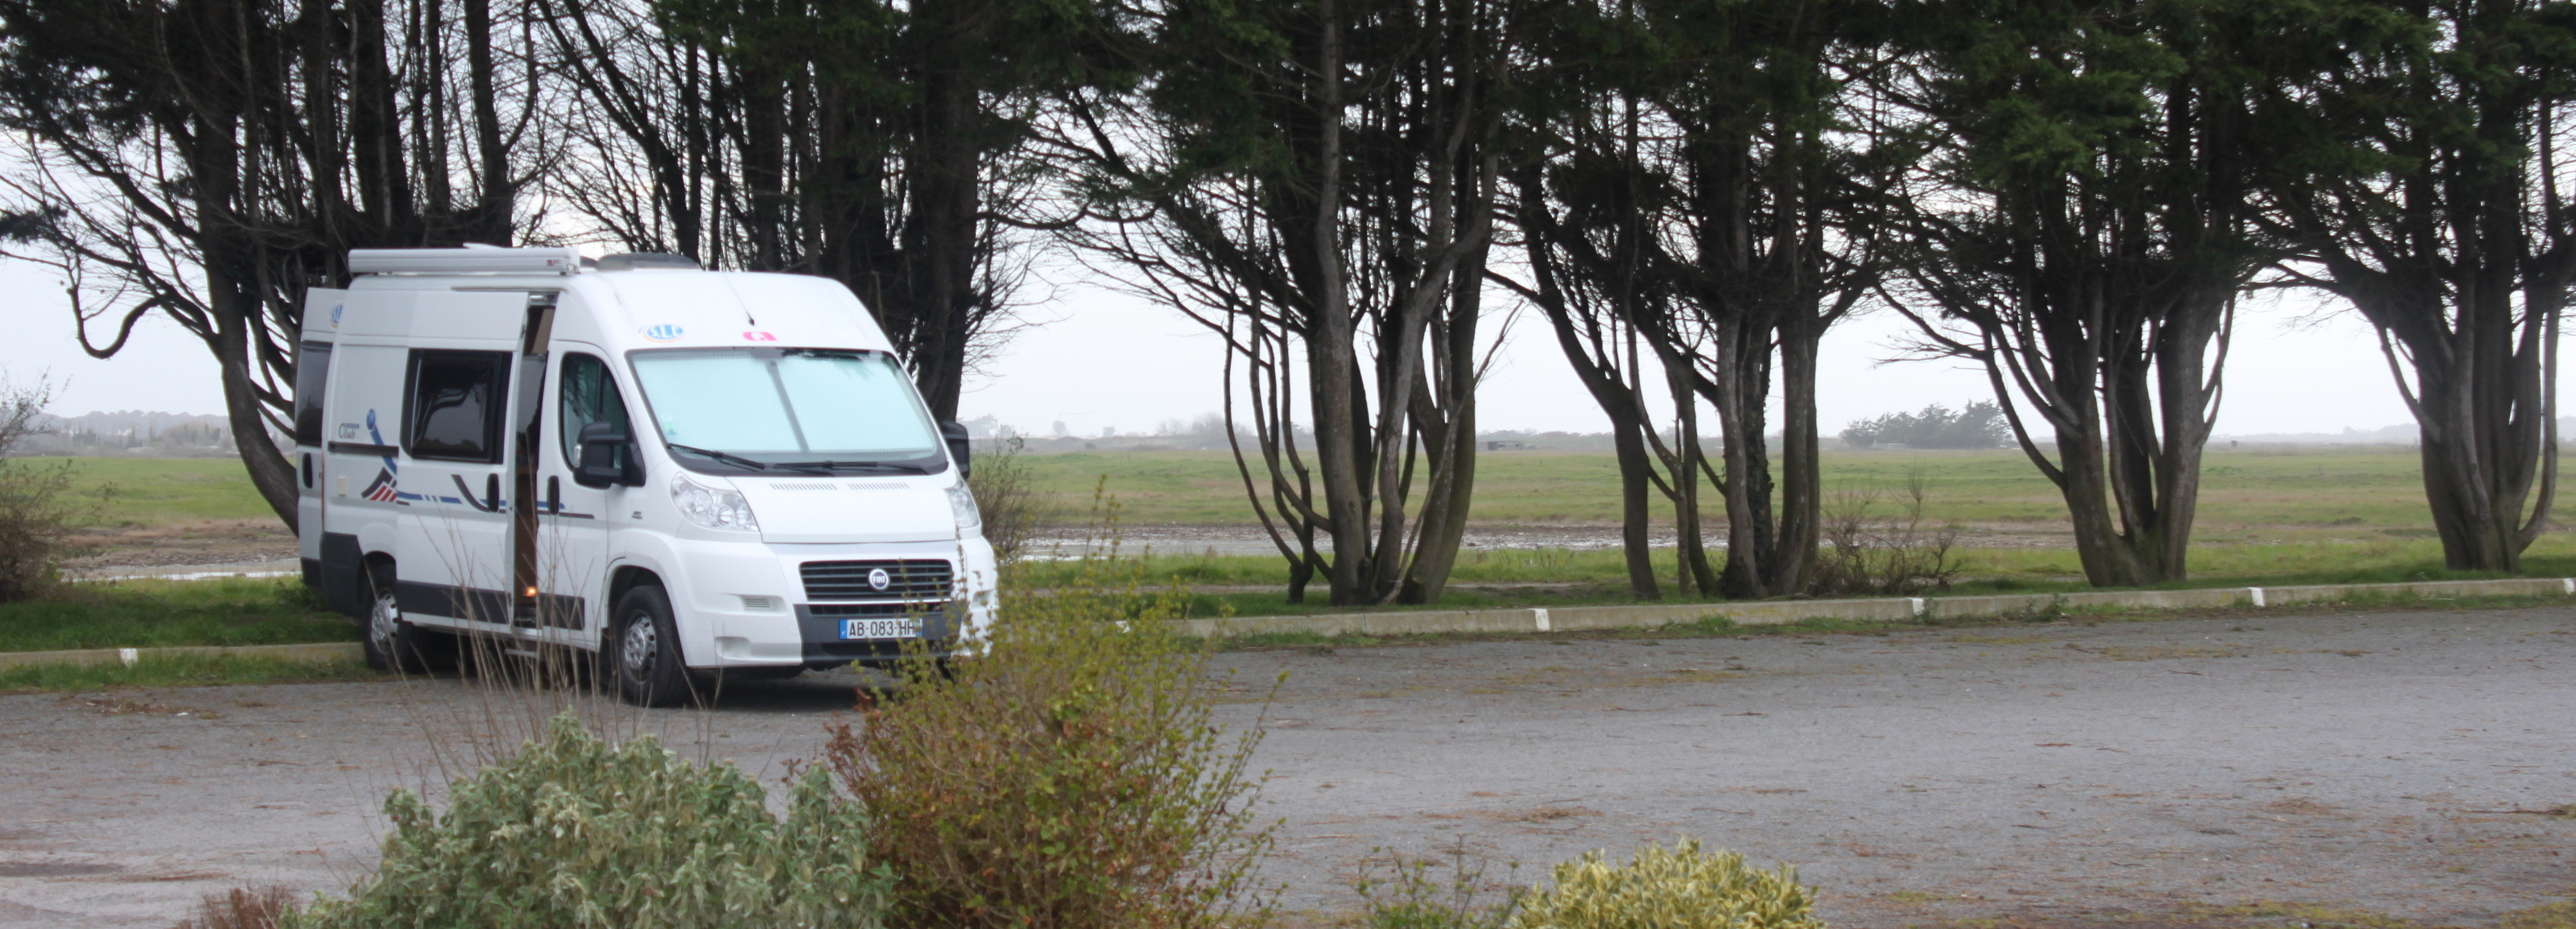 Aire de camping car l'herbaudiere